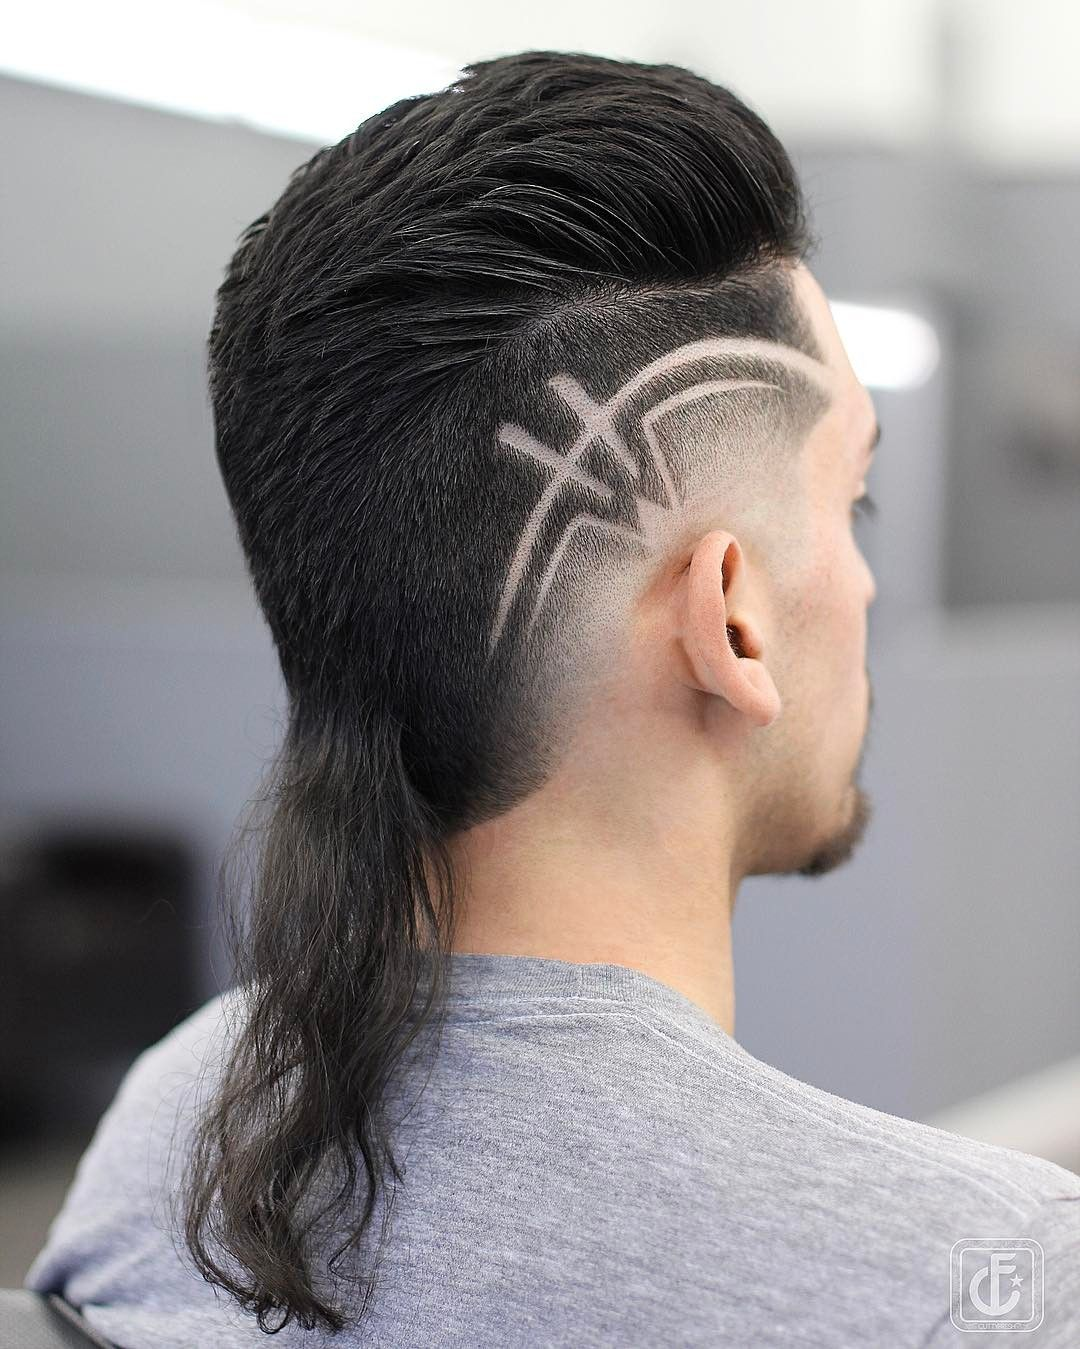 Boy hairstyle cutting 2018 mystery of the mullet haircut in   steeltooth comb pictures